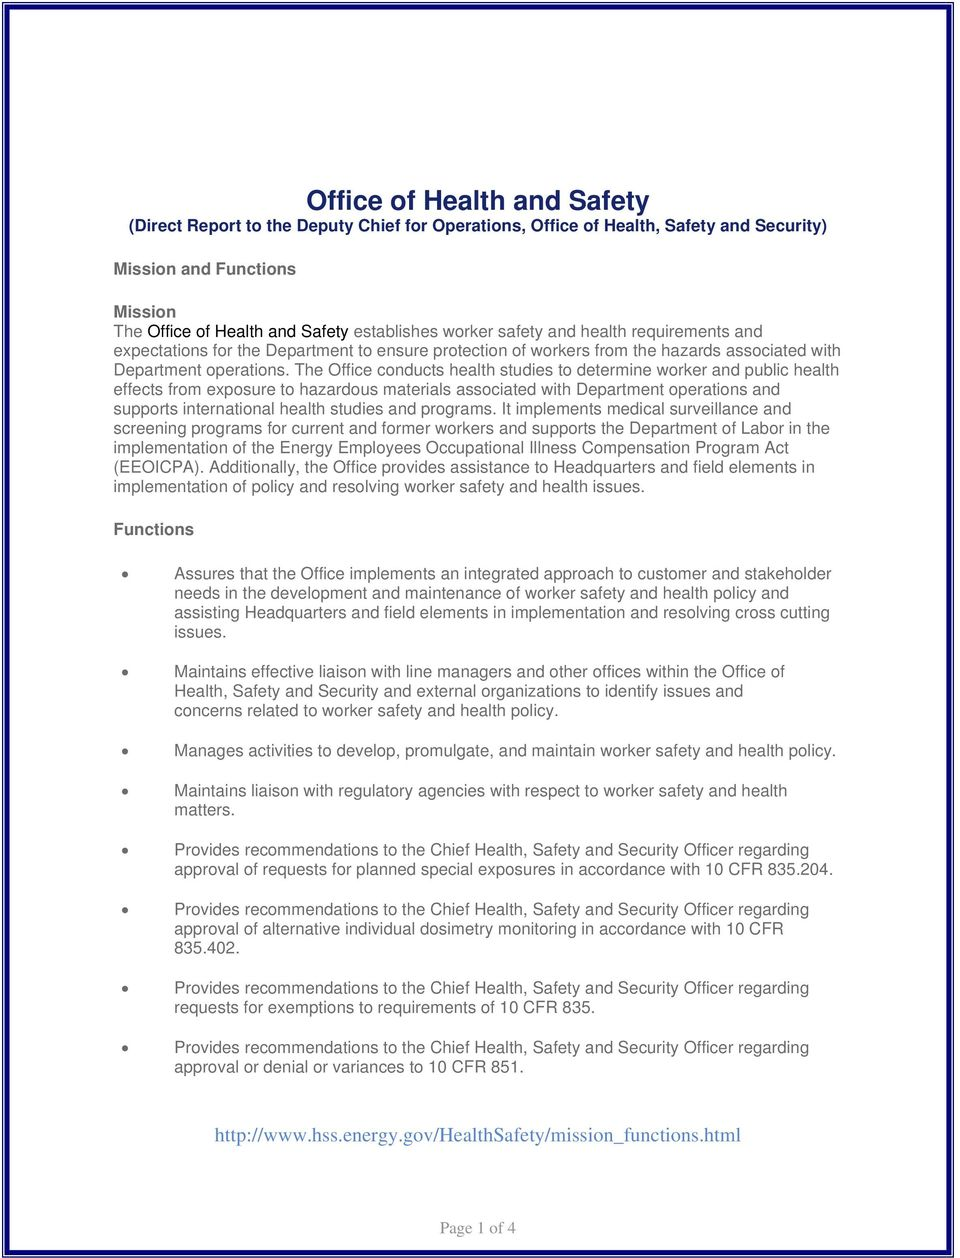 The Office conducts health studies to determine worker and public health effects from exposure to hazardous materials associated with Department operations and supports international health studies